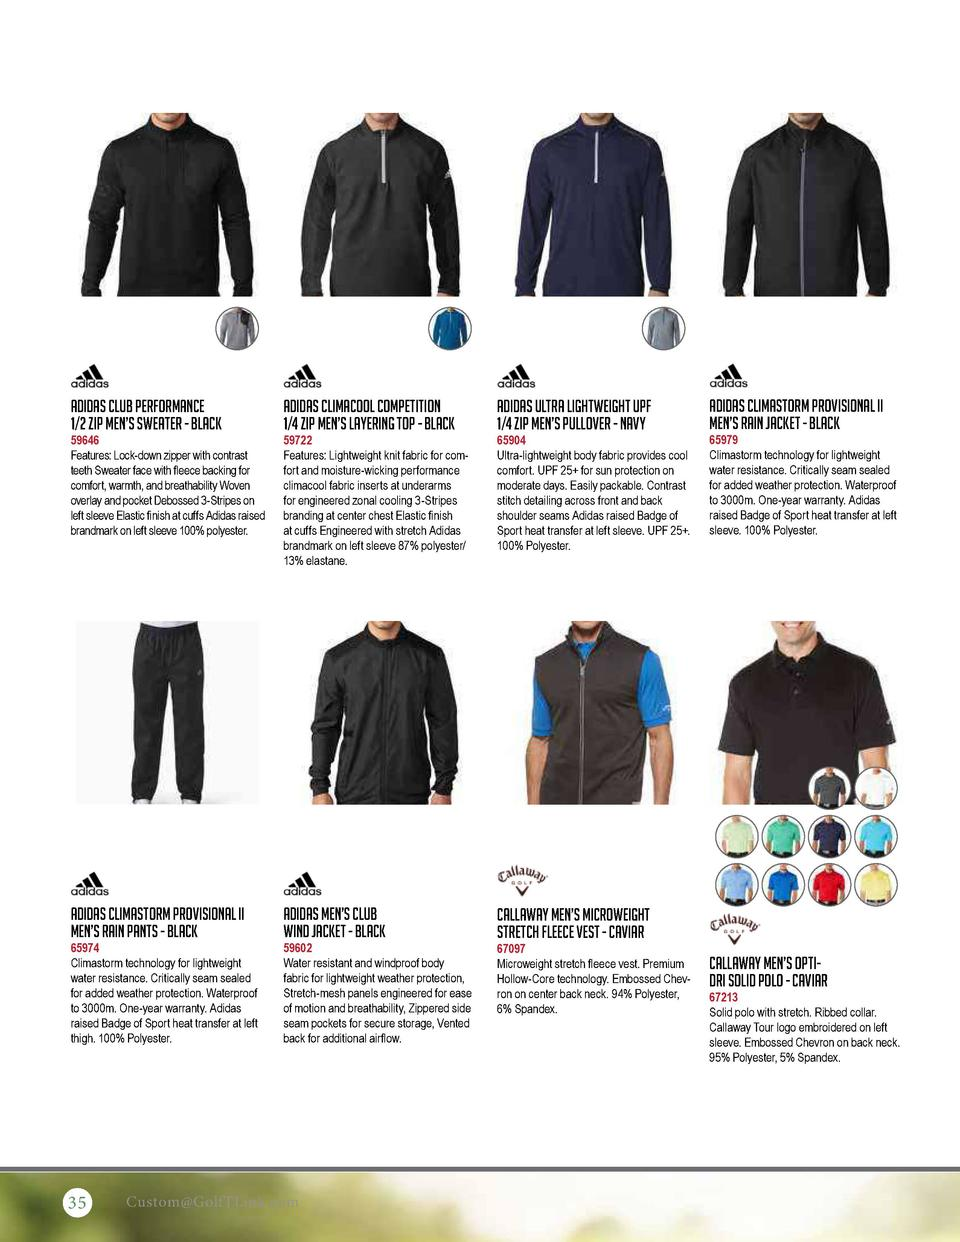 Adidas Club Performance 1 2 Zip Men   s Sweater - Black  Adidas Climacool Competition 1 4 Zip Men   s Layering Top - Black...